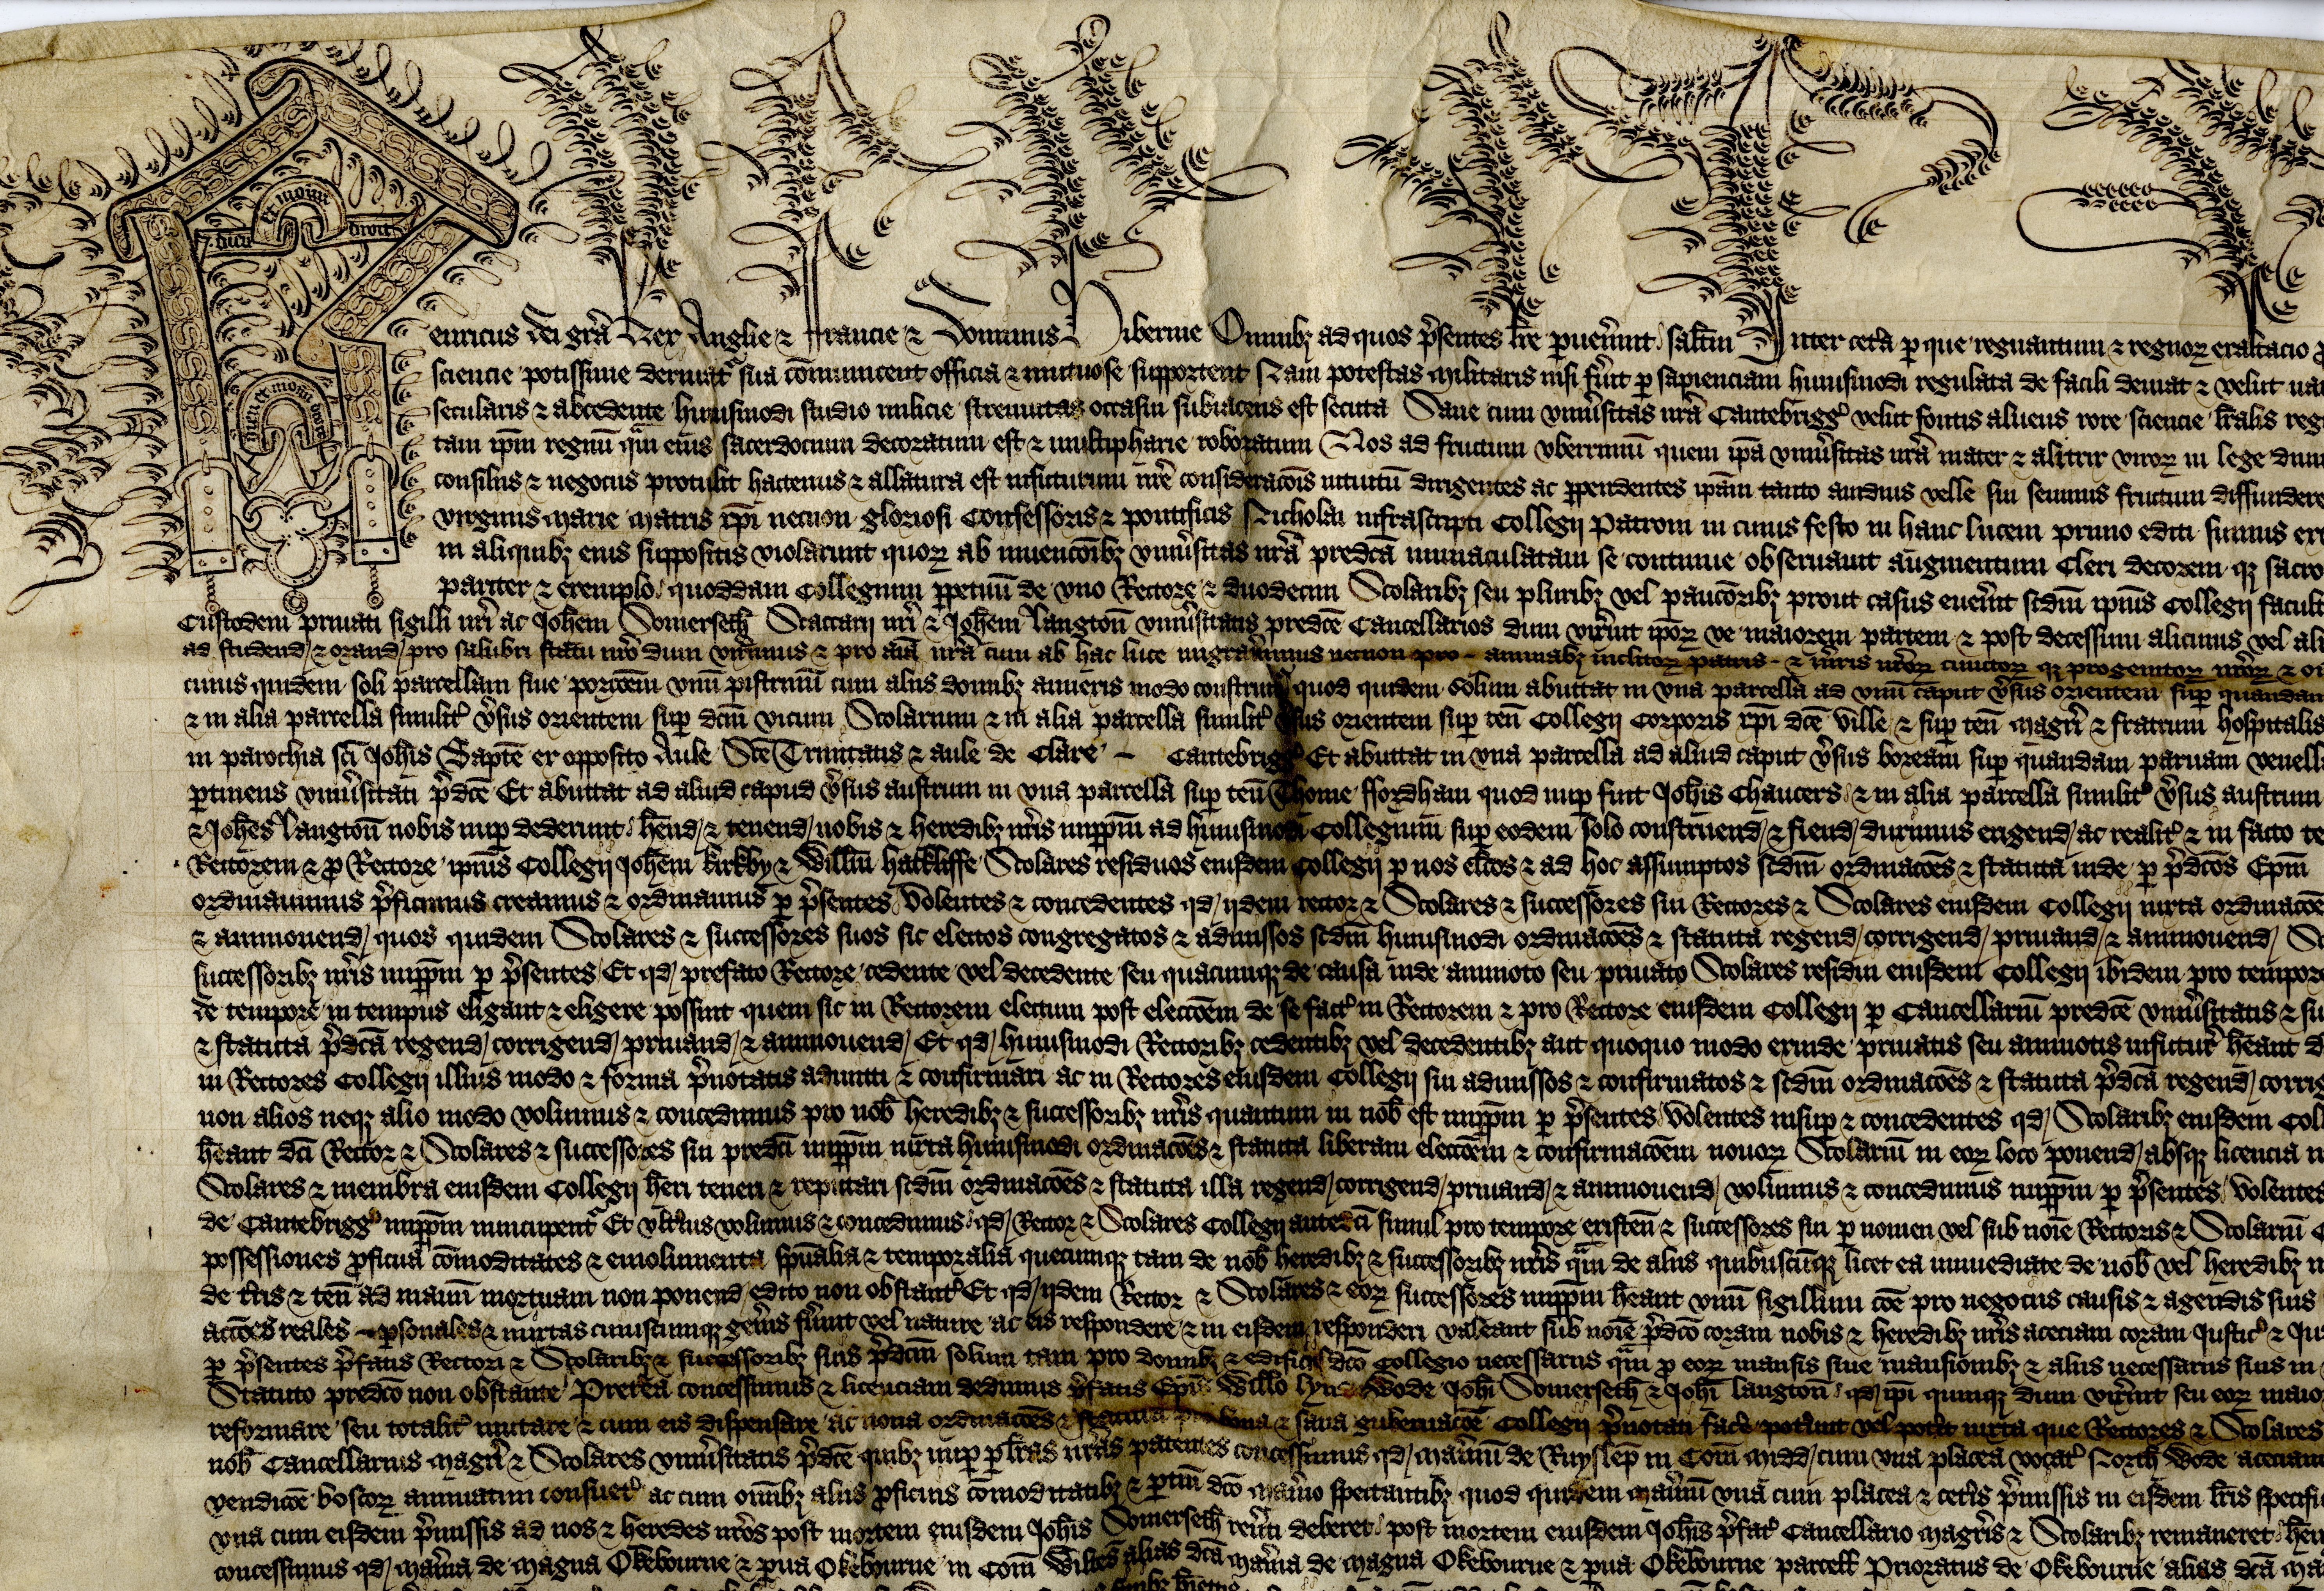 Part of the Royal Letters Patent founding King's College, 12 February 1441. [KC/11]